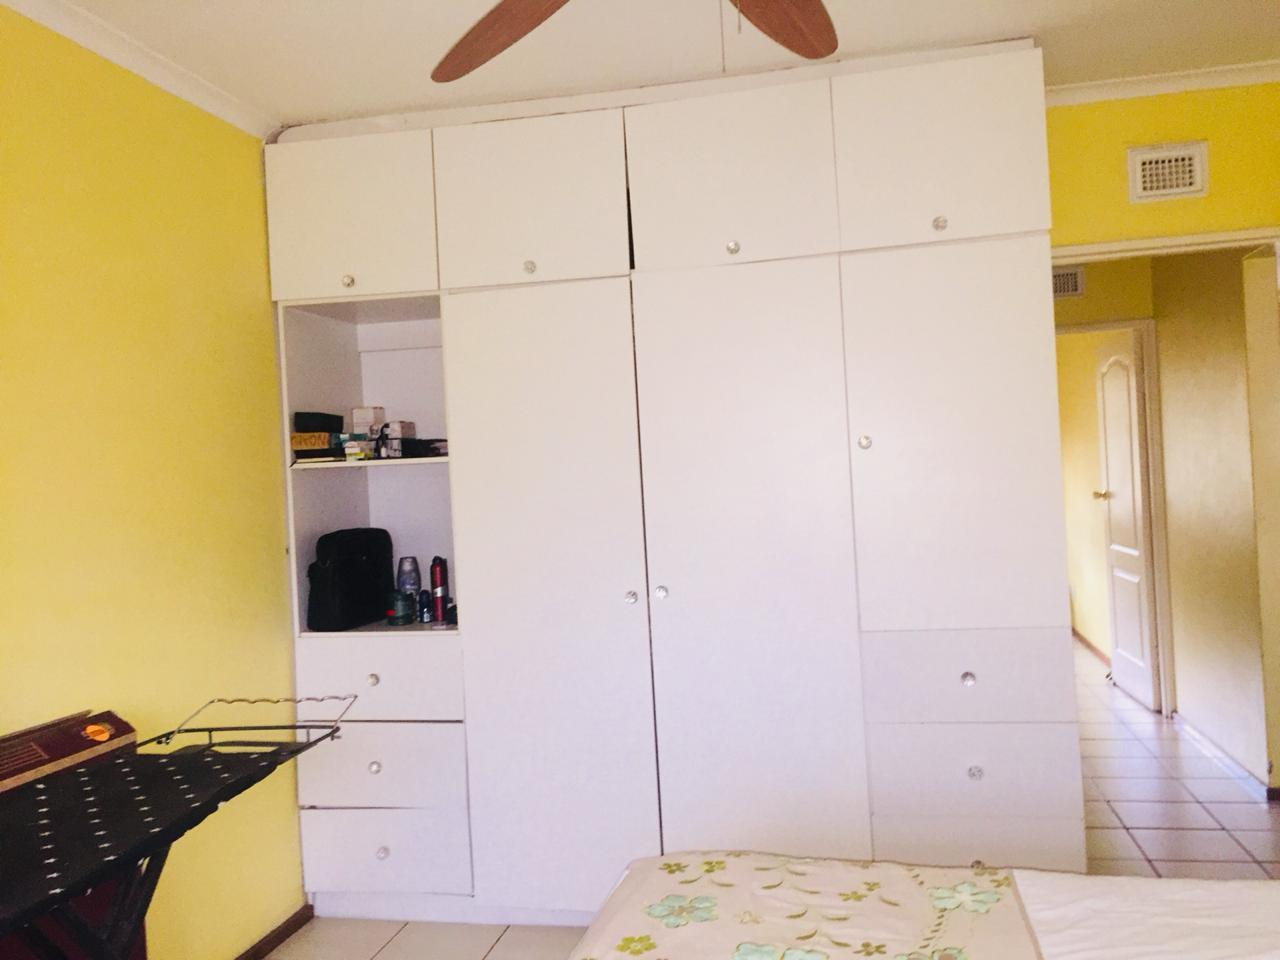 2 Bedroom Town house For Sale in Woodlands